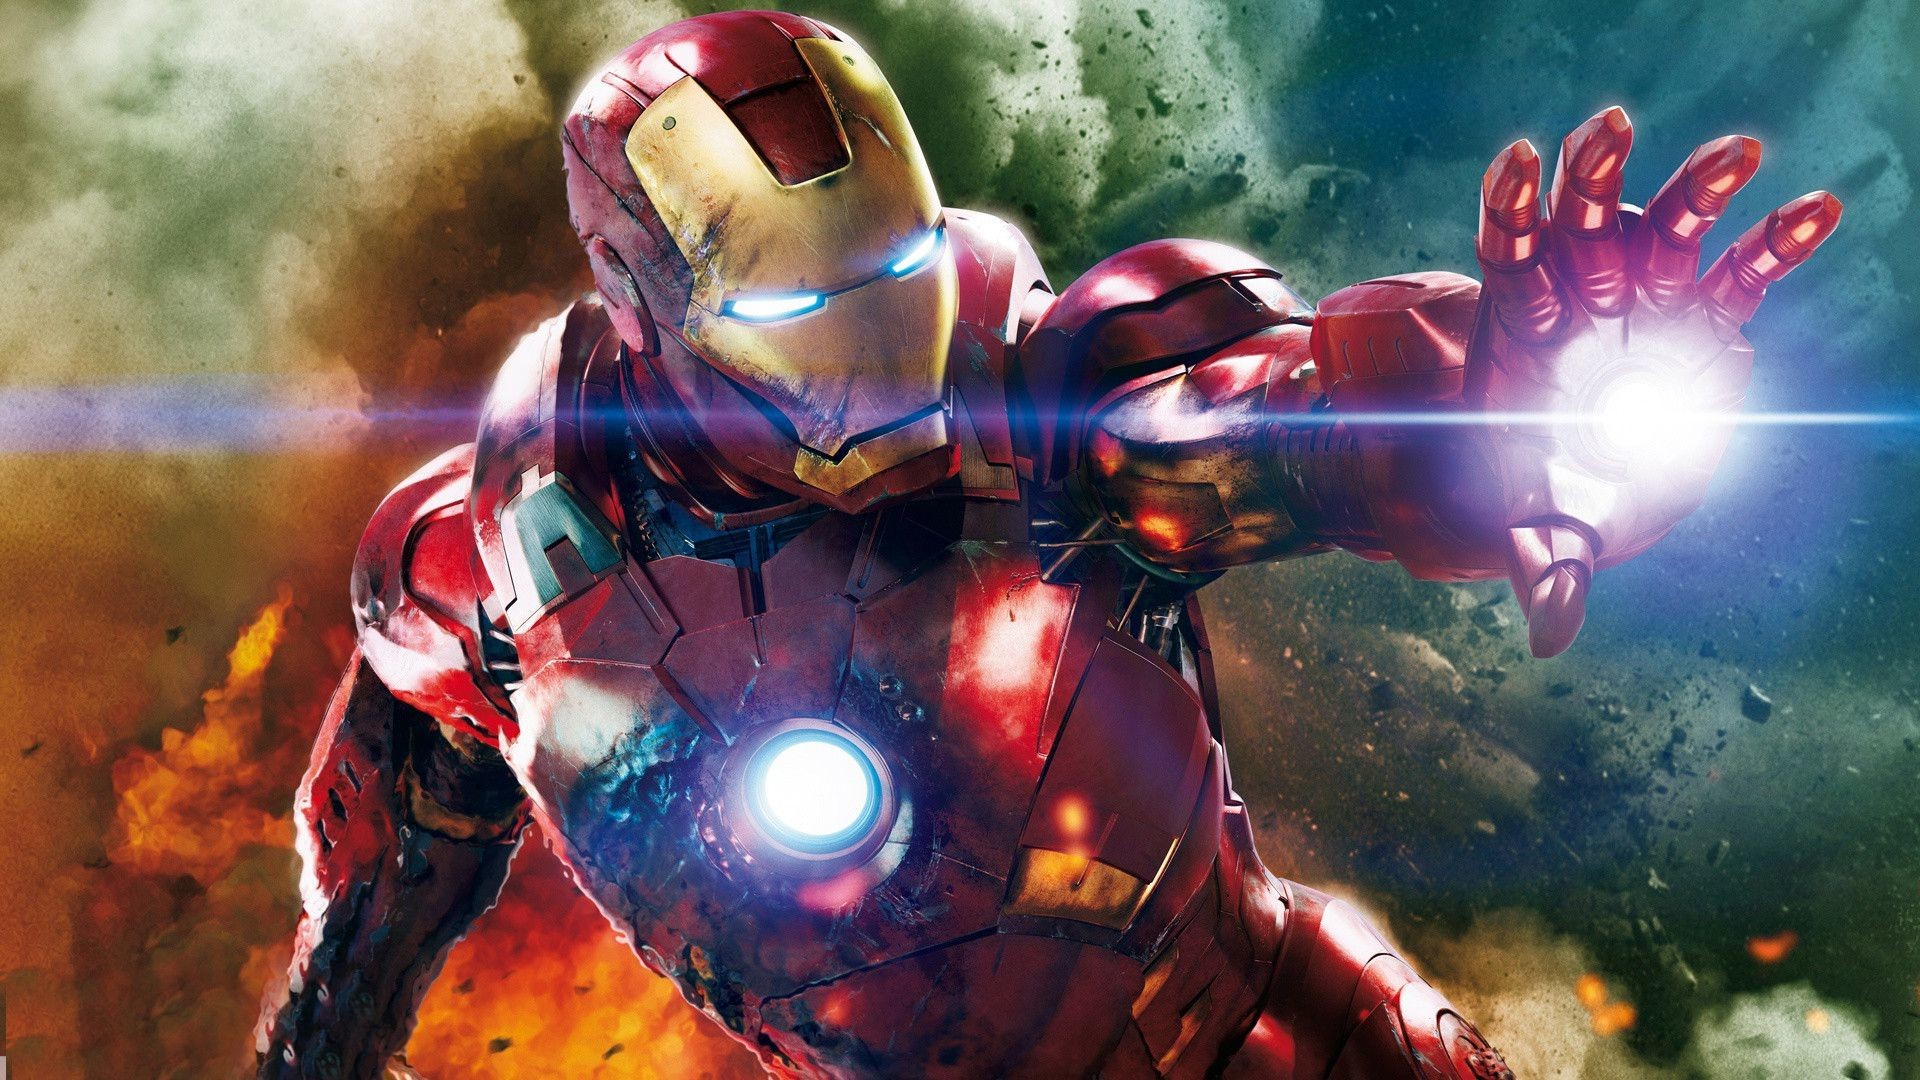 Collection of Iron Man Hd Wallpaper on Spyder Wallpapers